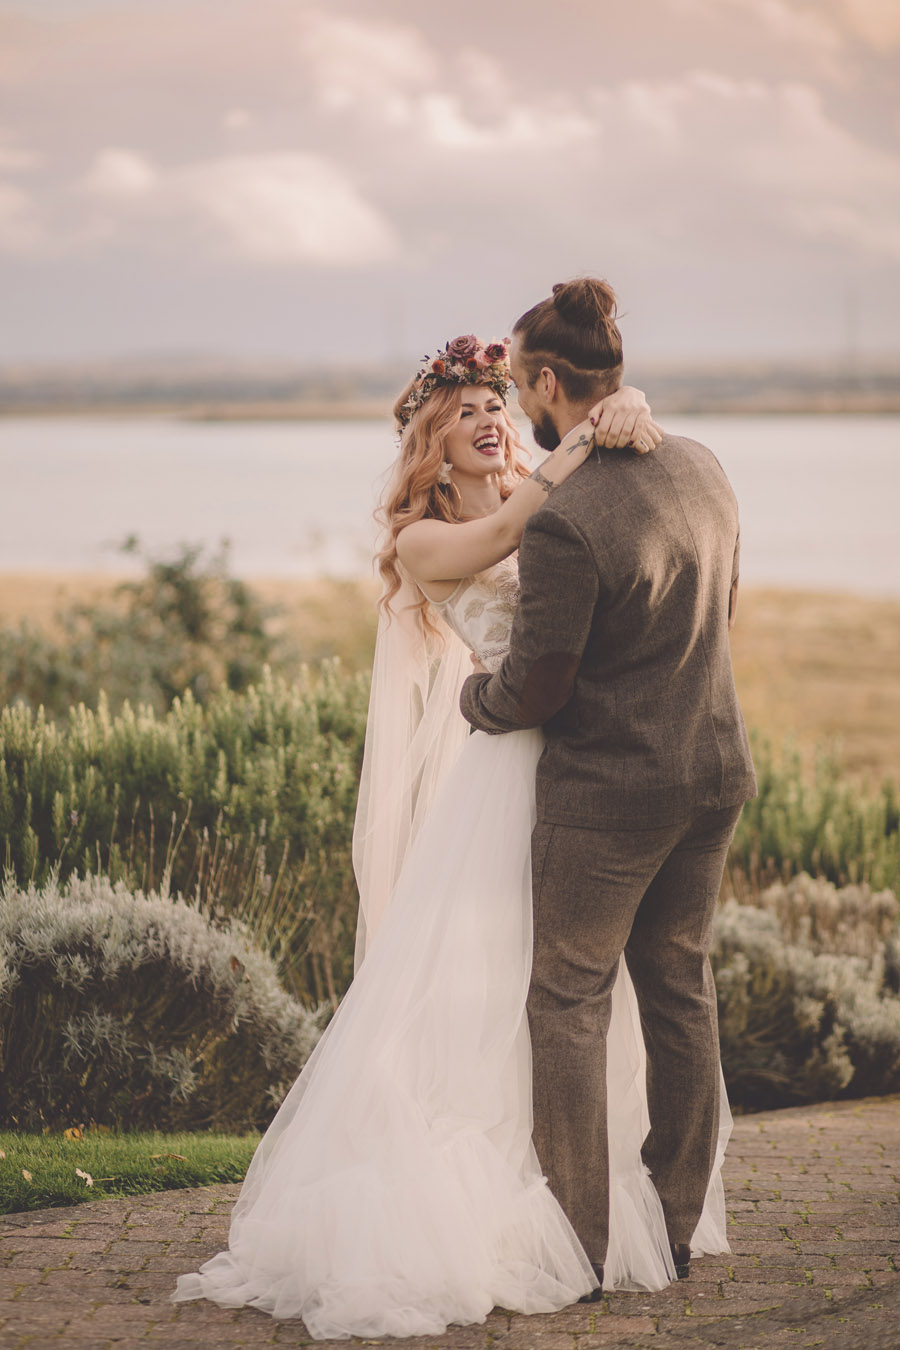 We Found Love! Natural, modern wedding inspiration from The Ferry House with images by Kerry Ann Duffy (14)